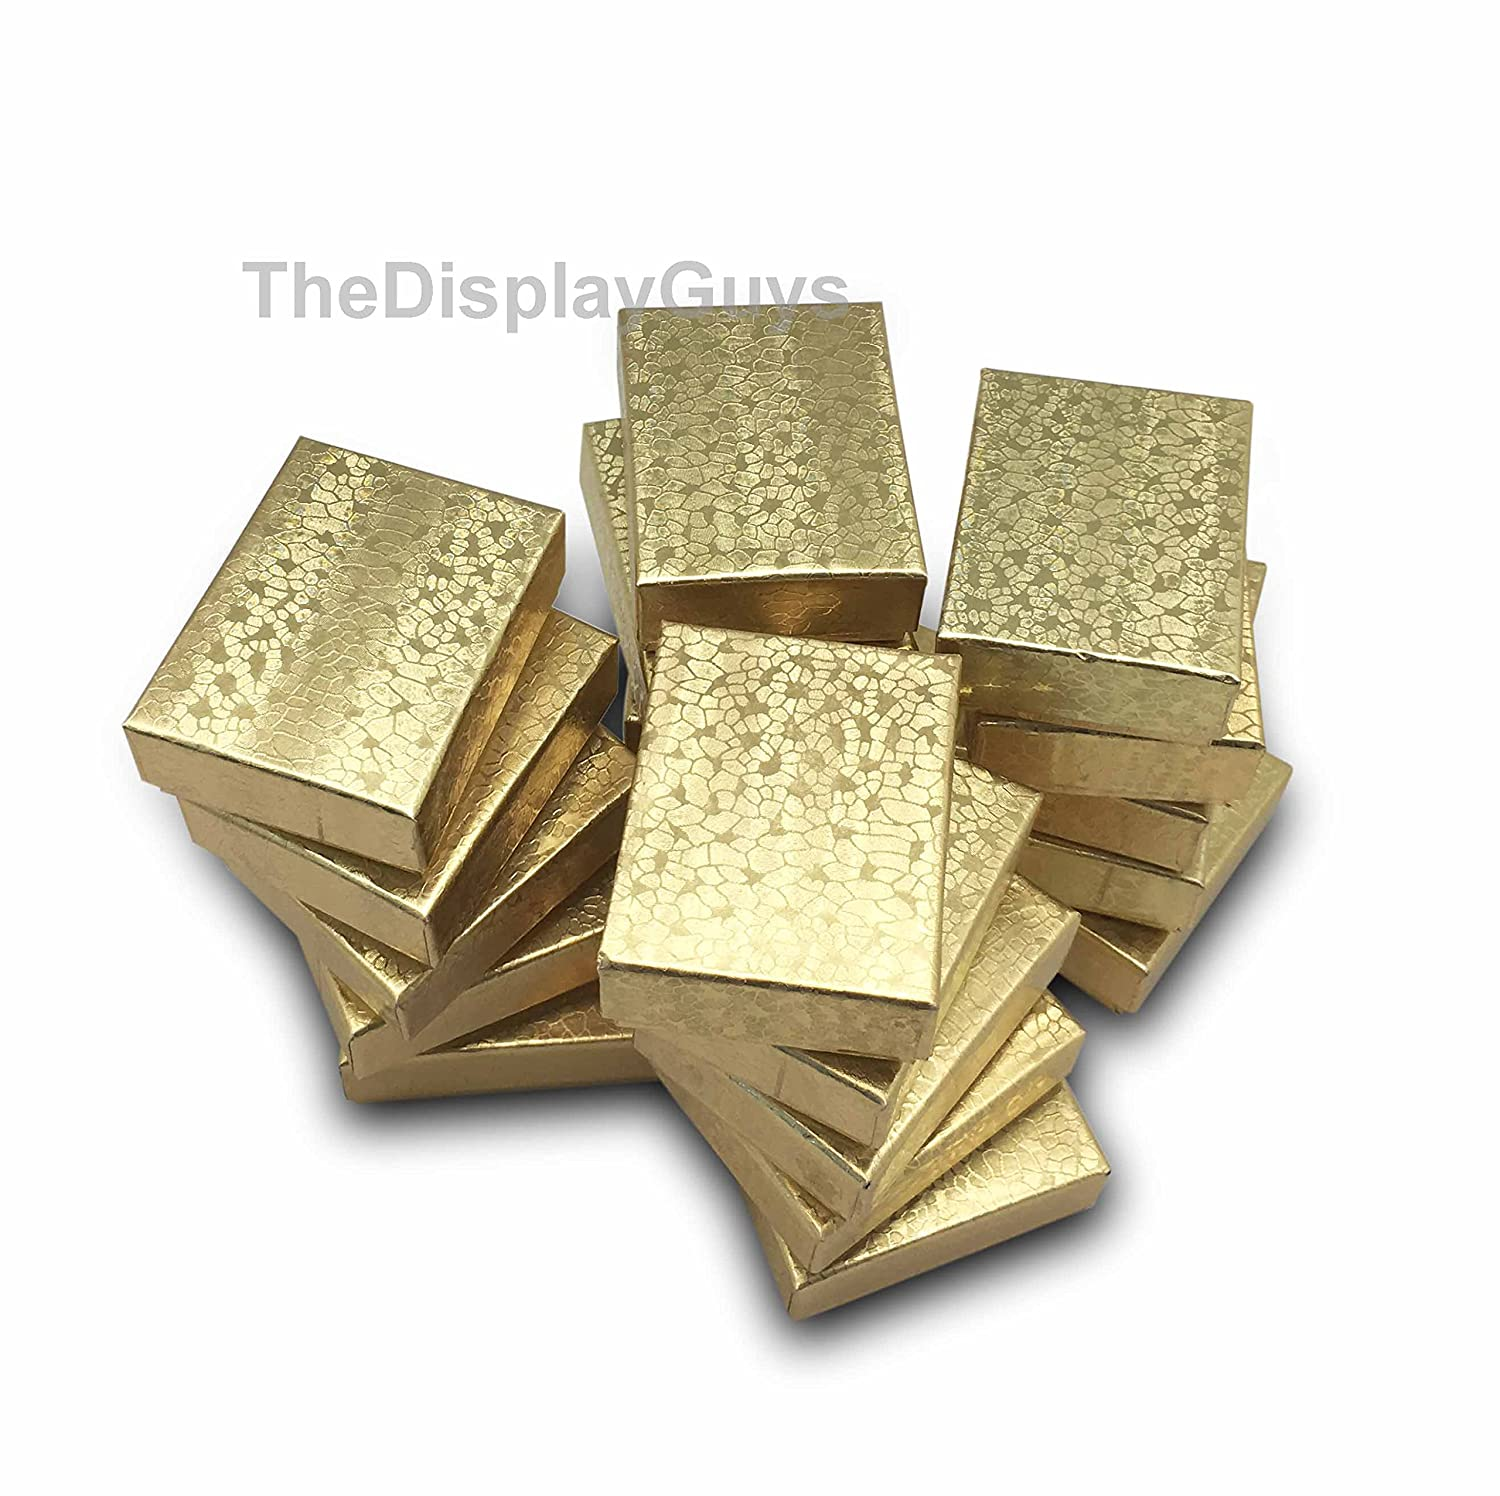 The Display Guys~ Pack of 100 Cotton Filled Cardboard Paper Gold Jewelry Box Gift Case -Gold Foil (2 1/8x1 5/8x3/4 inches #11) JPI Display